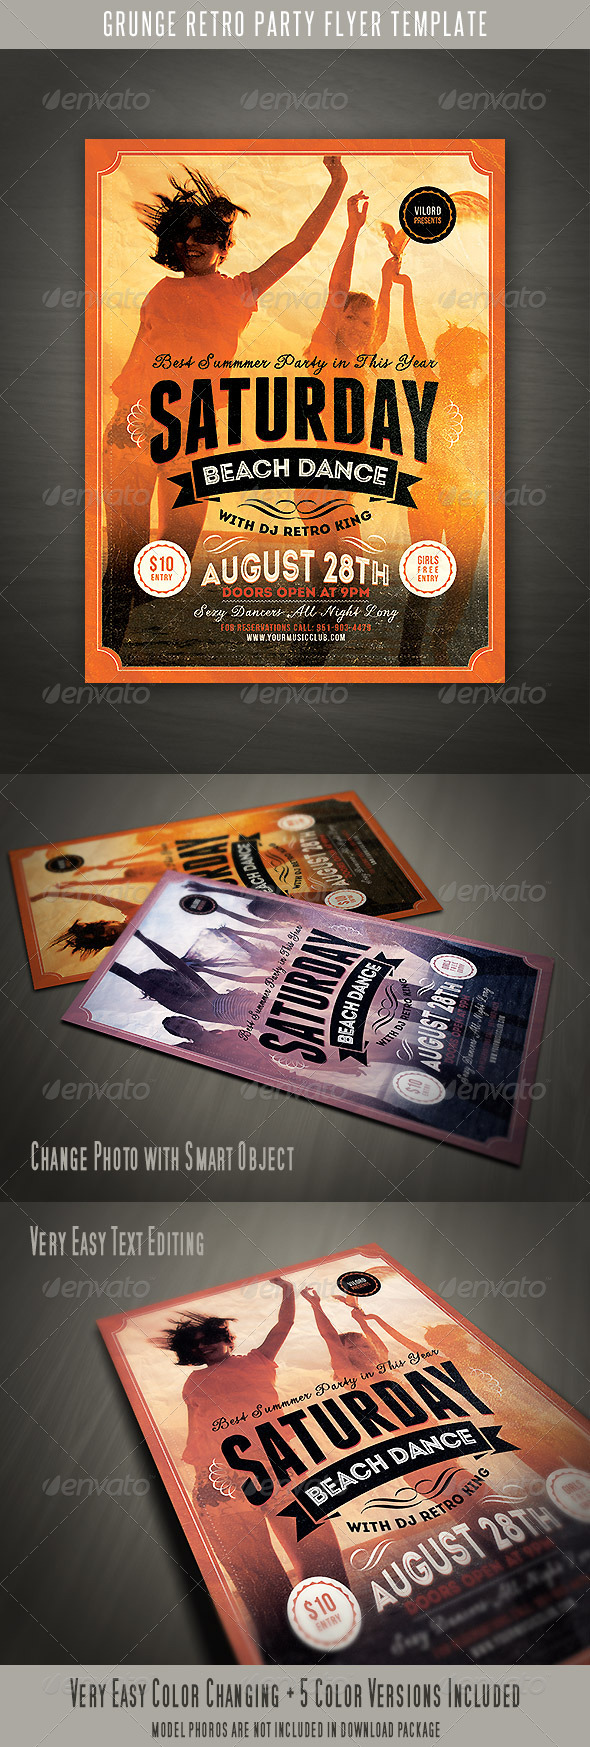 GraphicRiver Grunge Retro Party Flyer 5242662